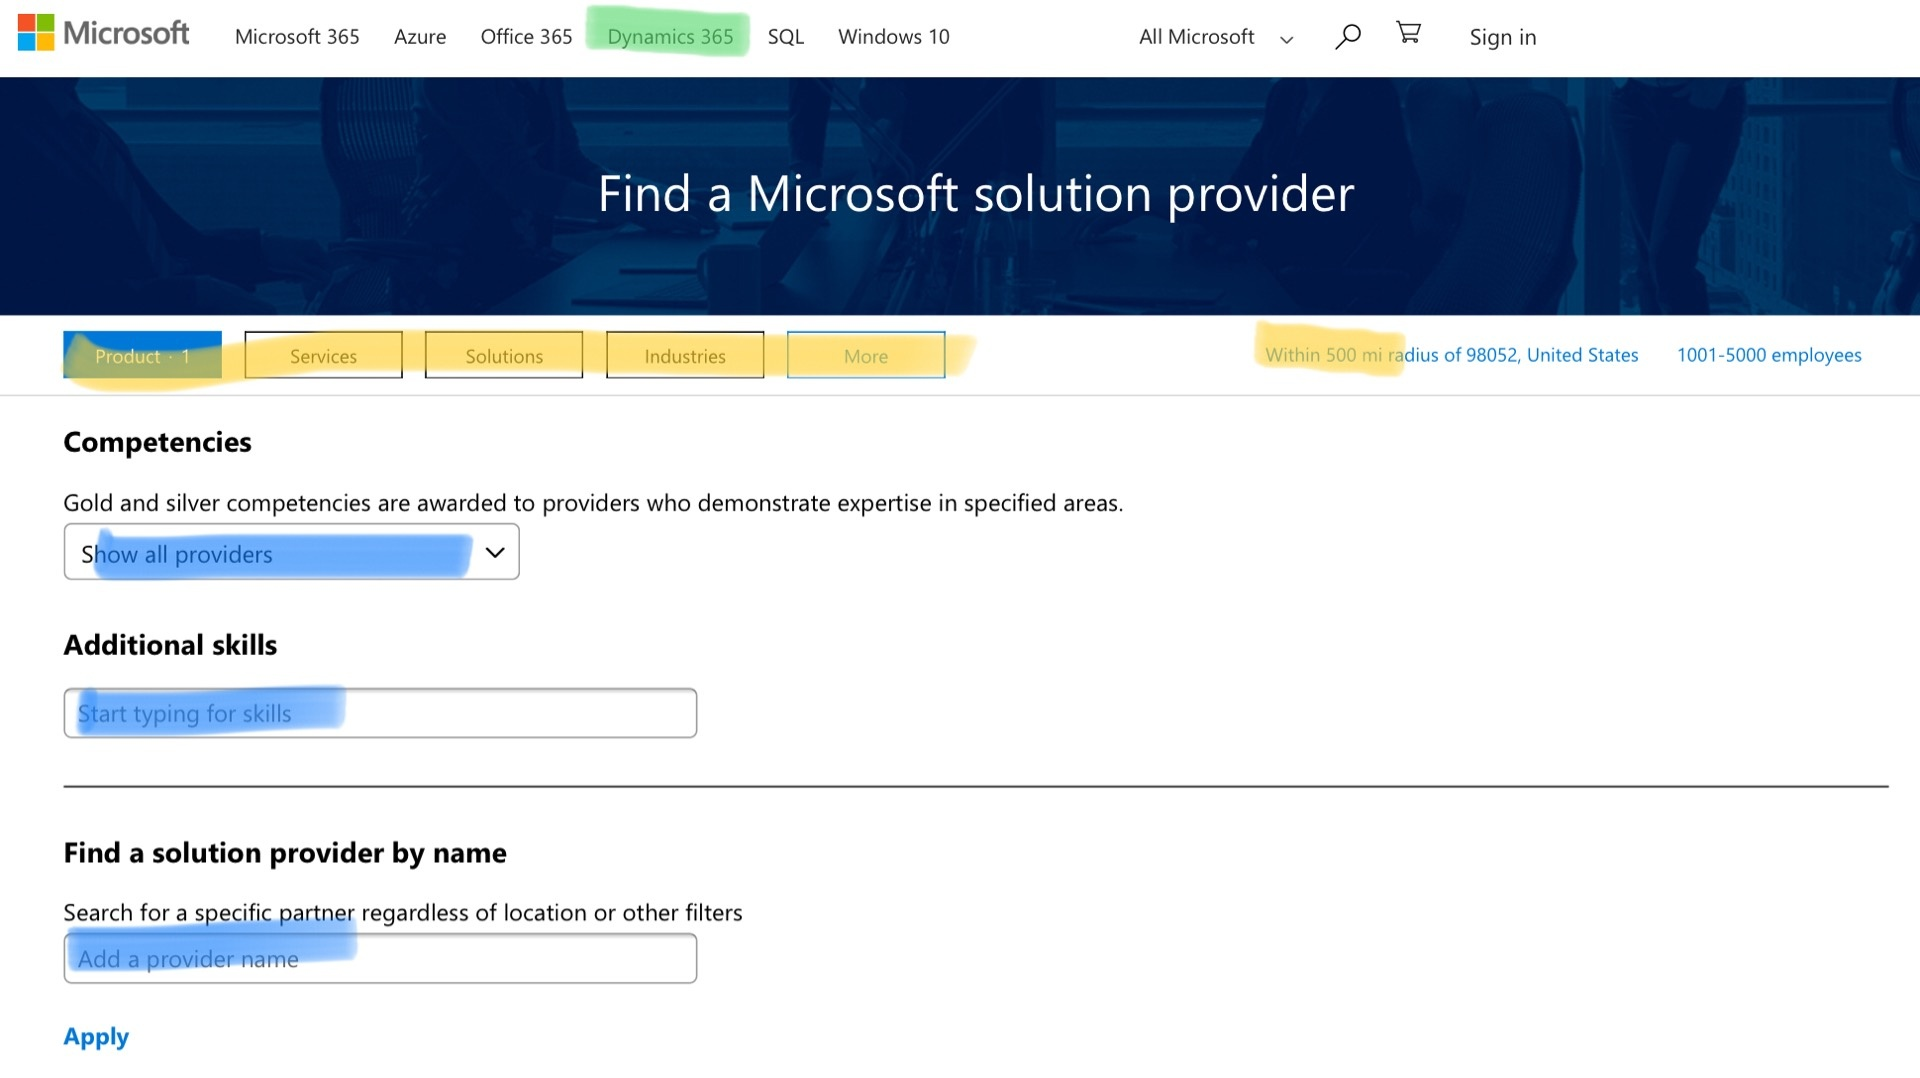 How To Cross Check That A Company Is A Microsoft Partner Quora